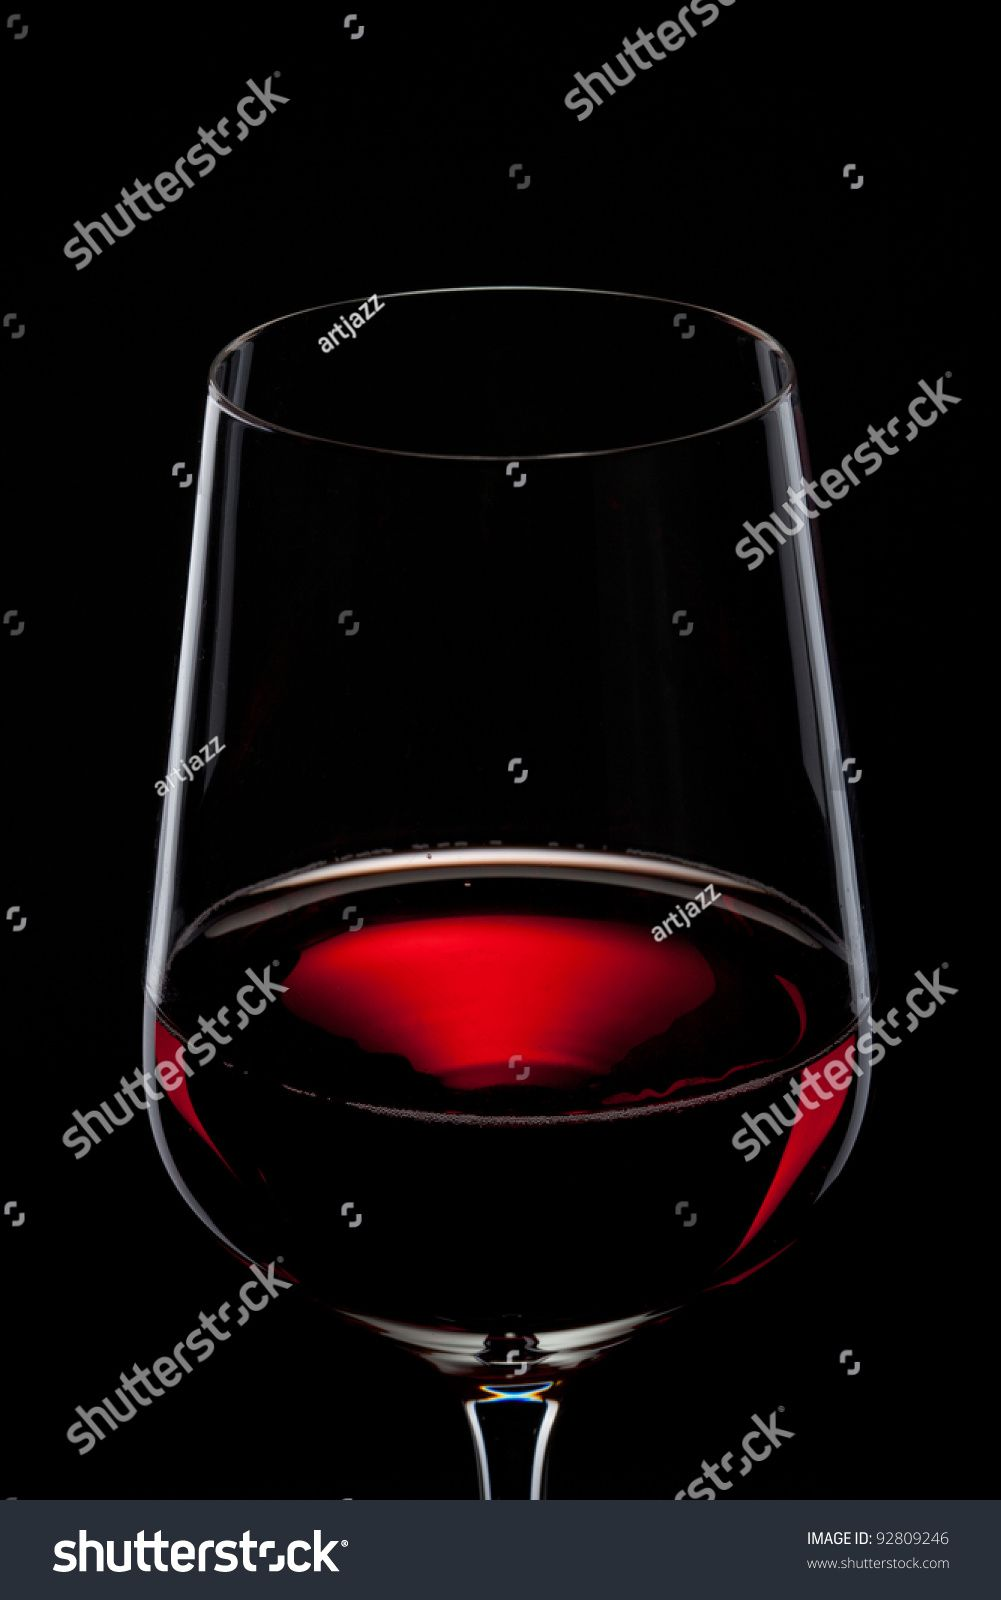 Red Wine In Glass Isolated On Black Ad Affiliate Wine Red Glass Black In 2020 Red Wine Wine Glass